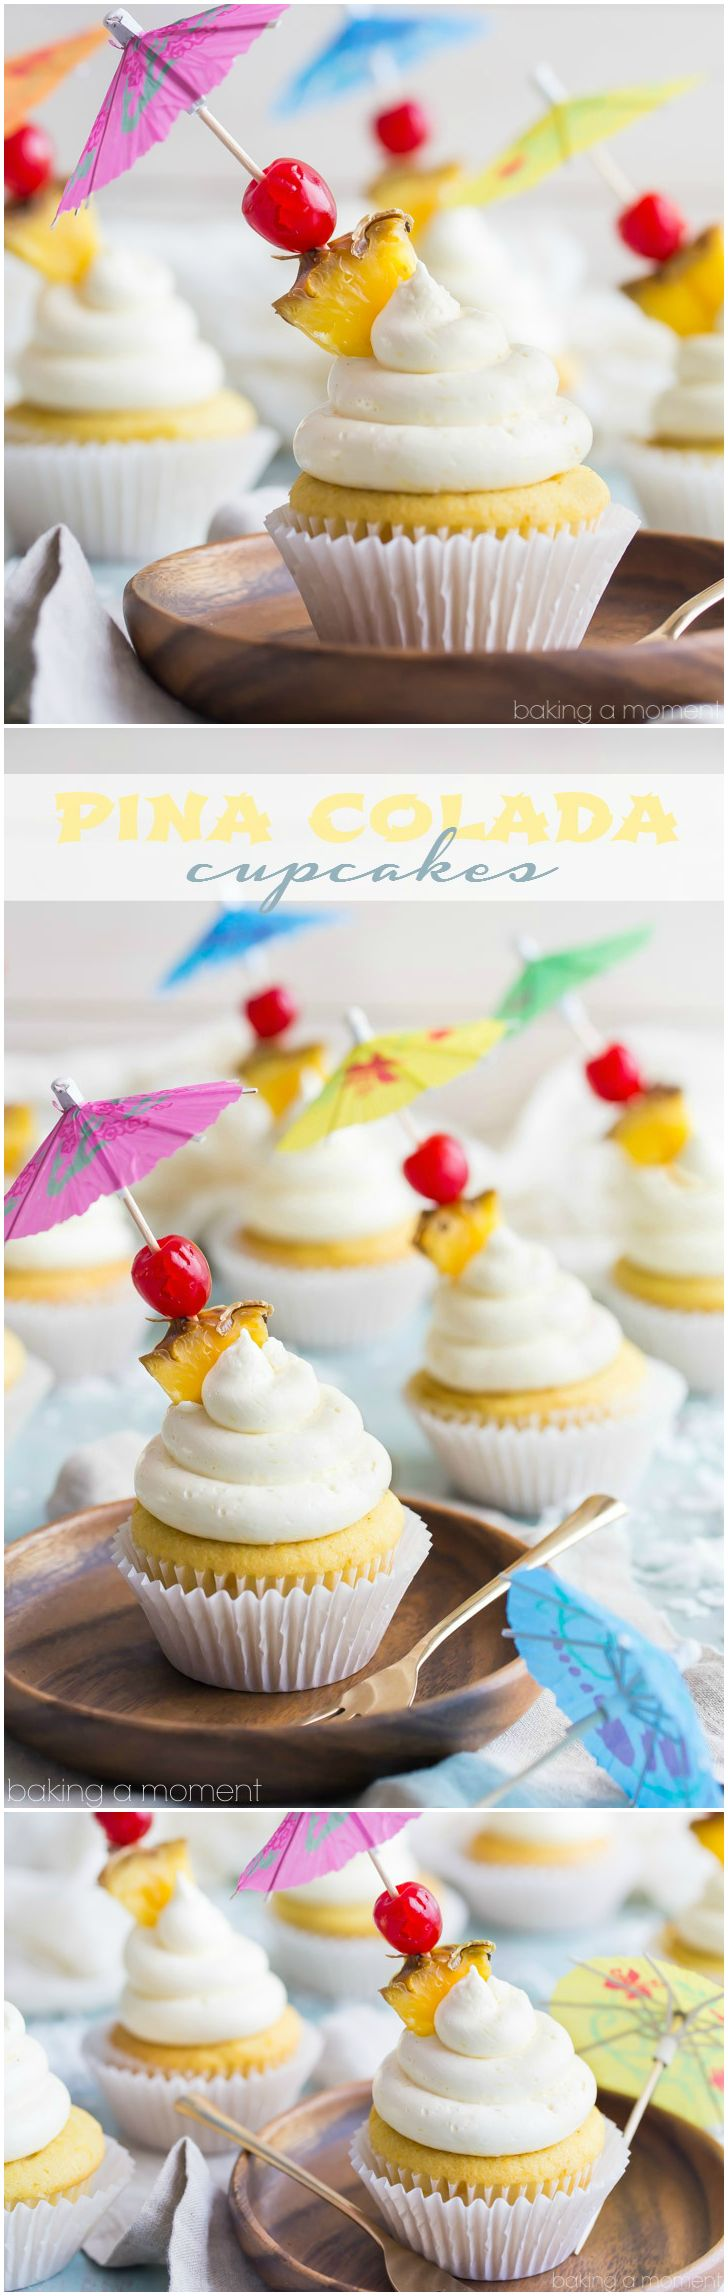 Pina Colada Cupcakes- just like my favorite tropical cocktail! The pineapple and coconut flavors really shine in this recipe :)  food desserts cupcakes